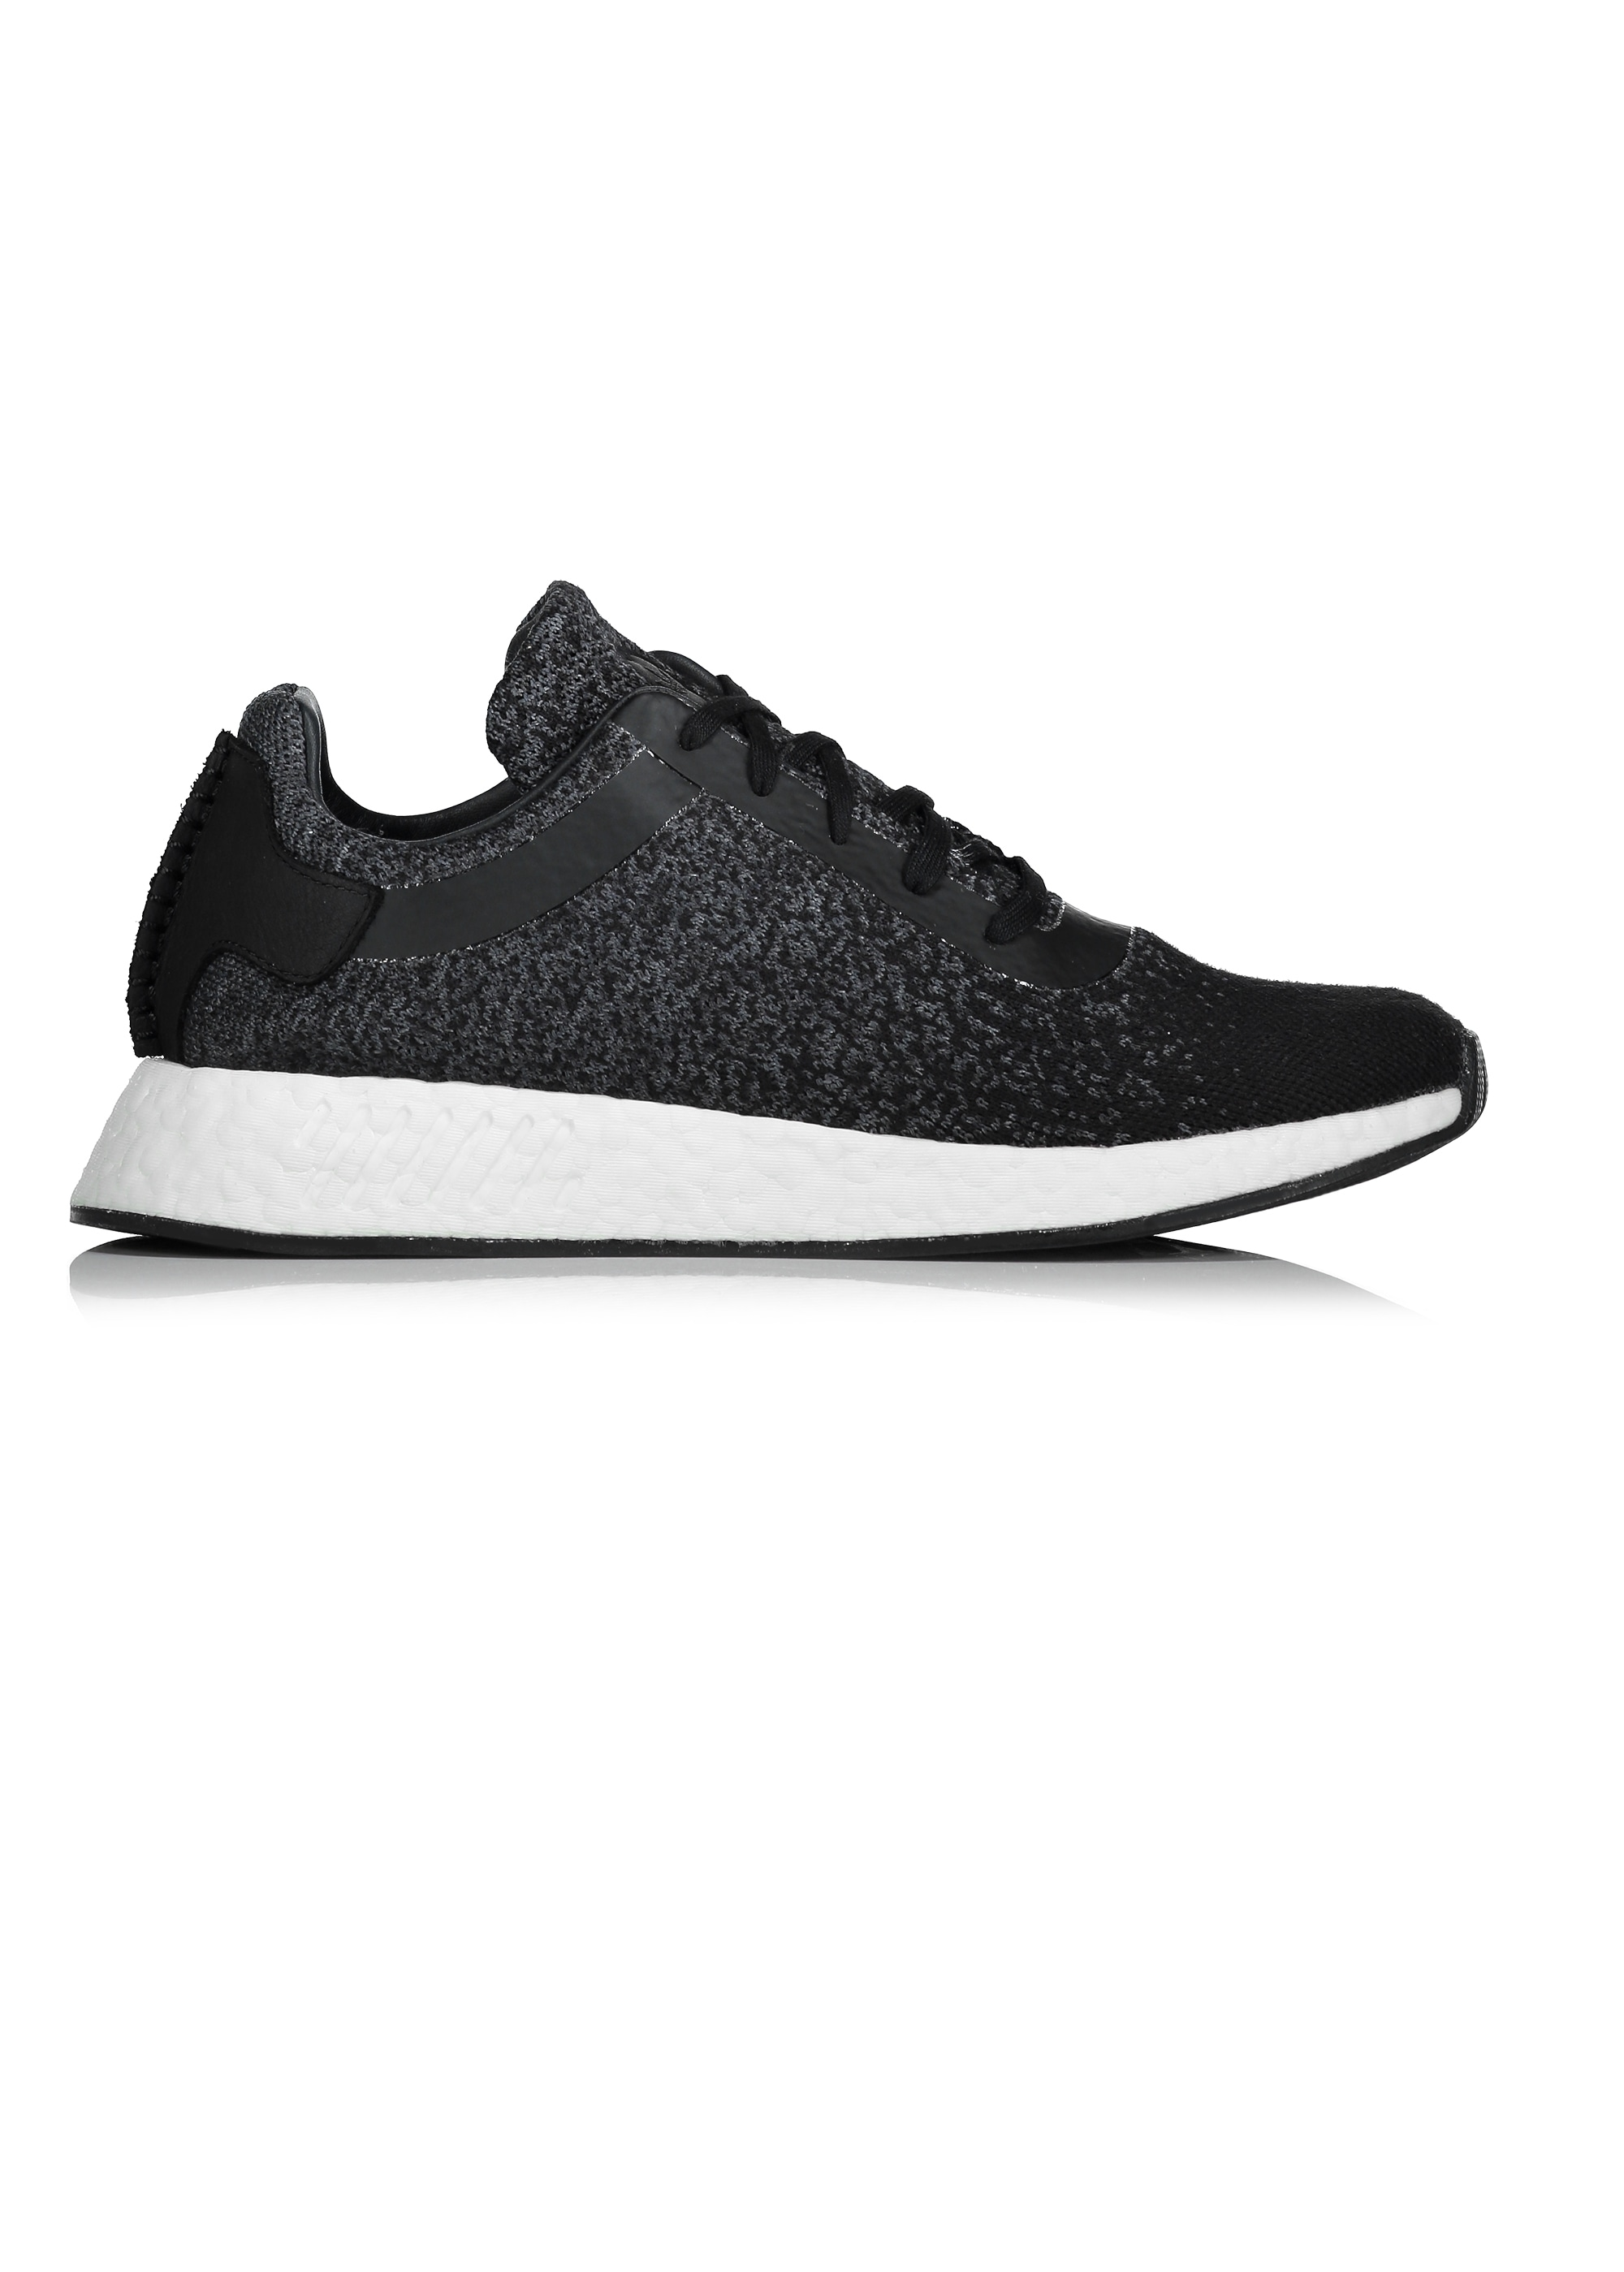 lowest price ed518 a4891 adidas by Wings+Horns NMD R2 PK - Black